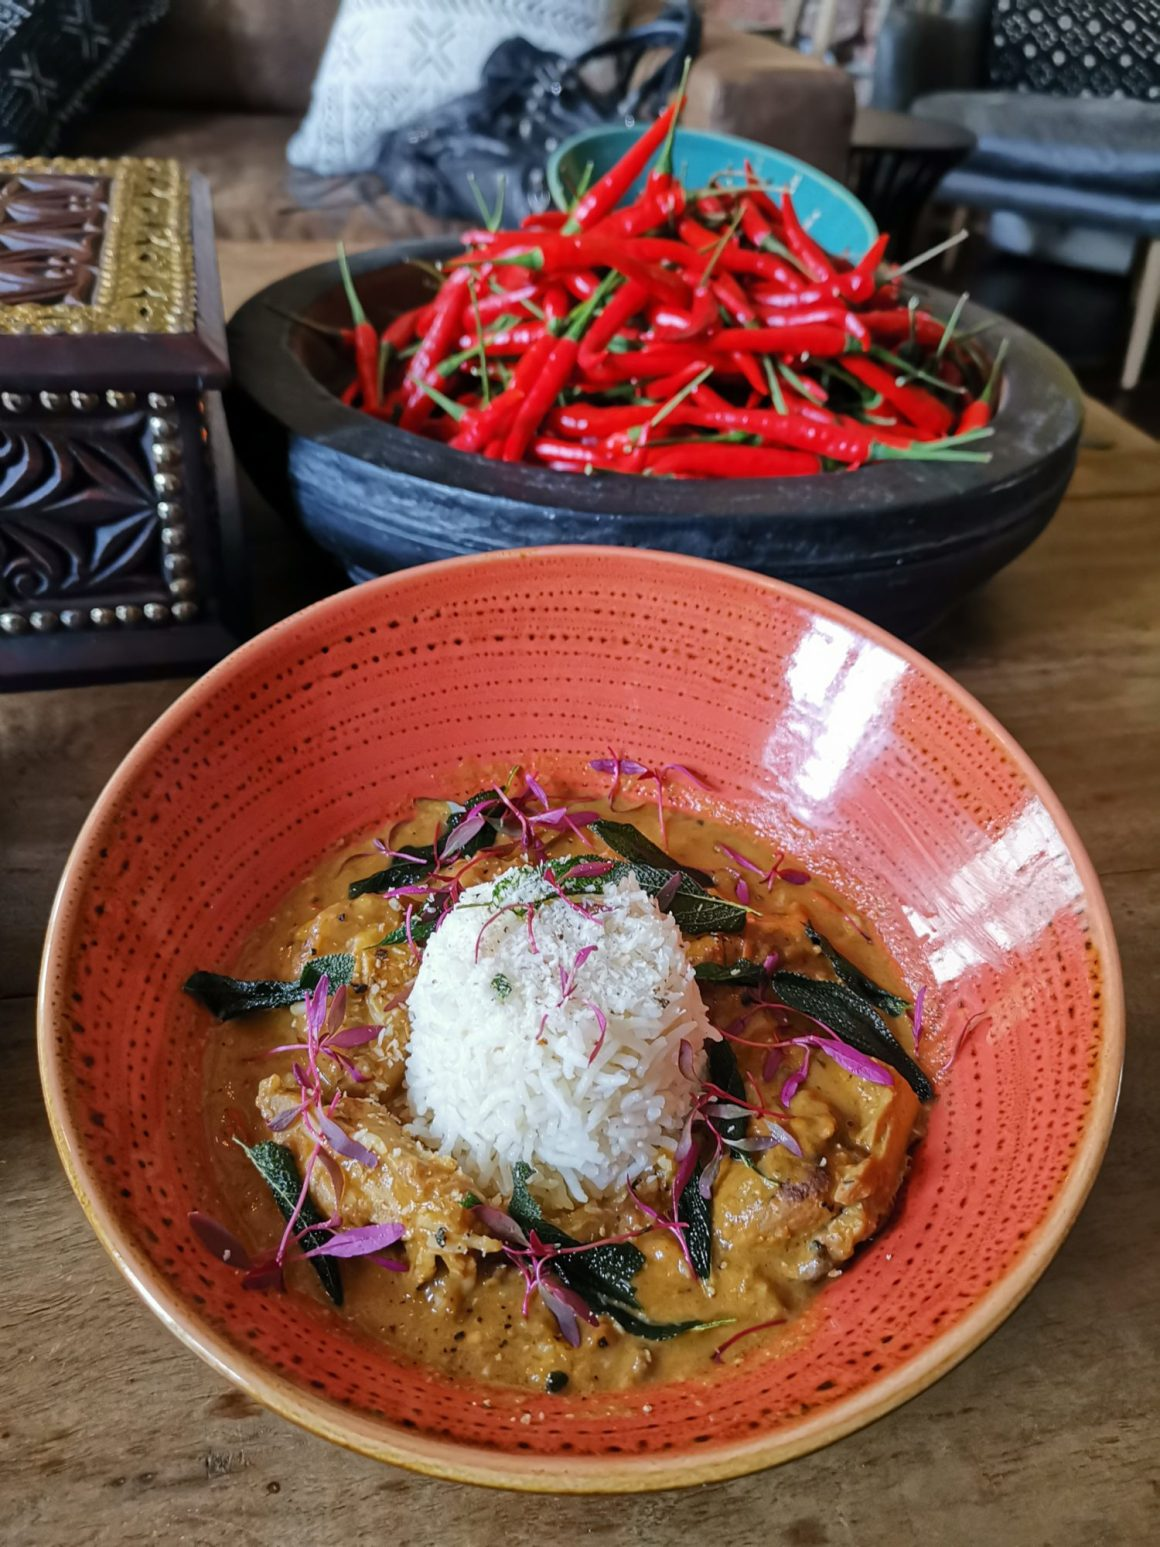 Kafe Utu, First Afro Cafe & Lounge In Singapore - Liberian Peanut Chicken Stew ($28)